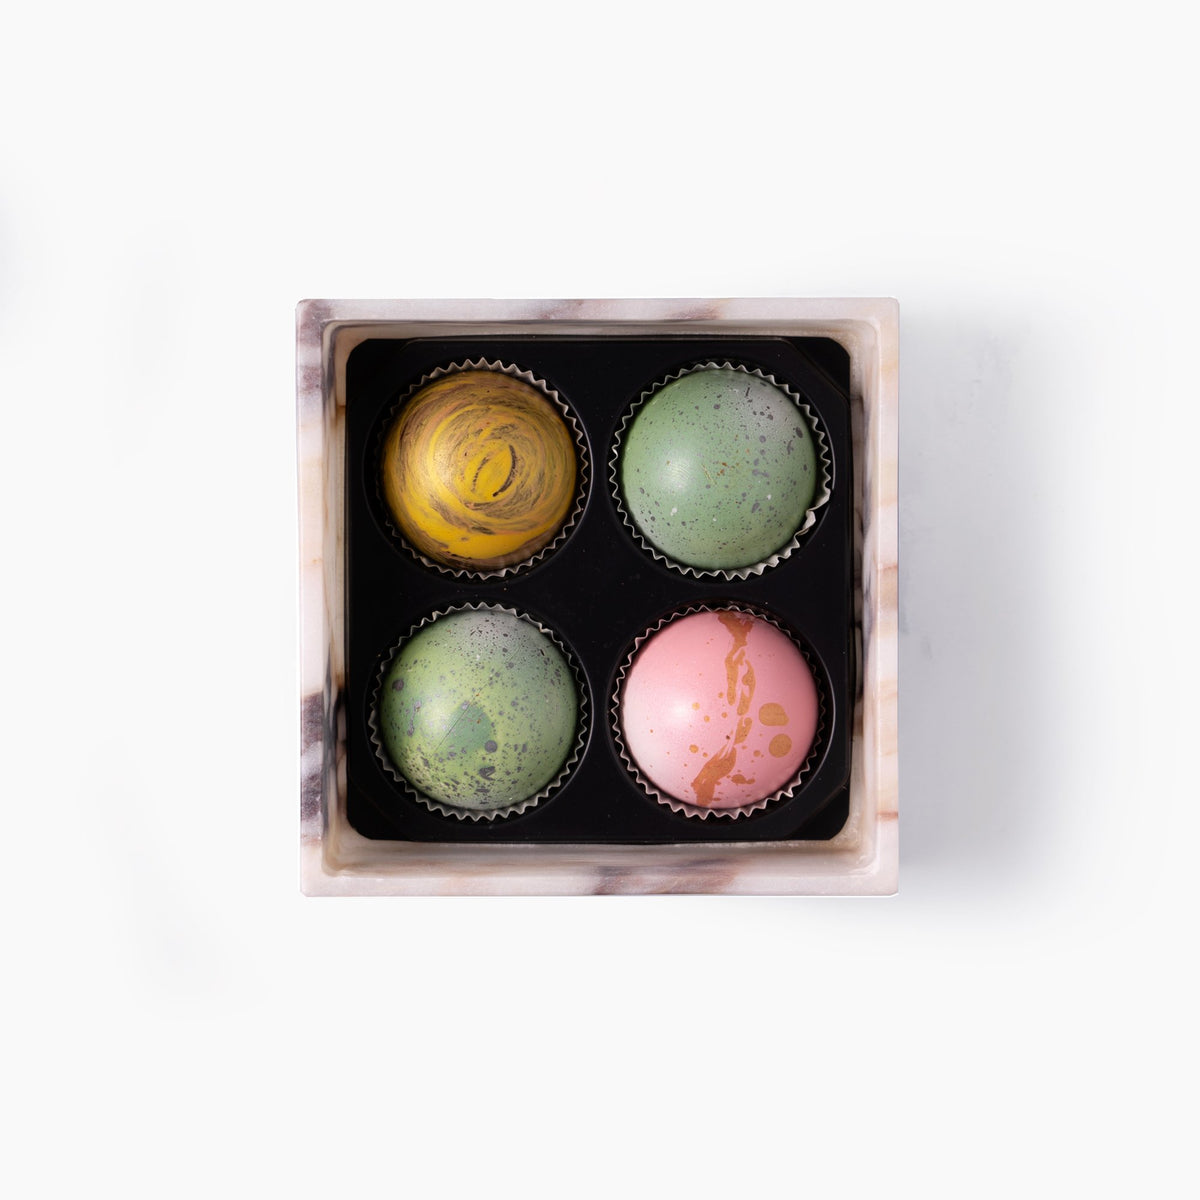 Flair Marble Box of Chocolate Truffles, 4 pc.